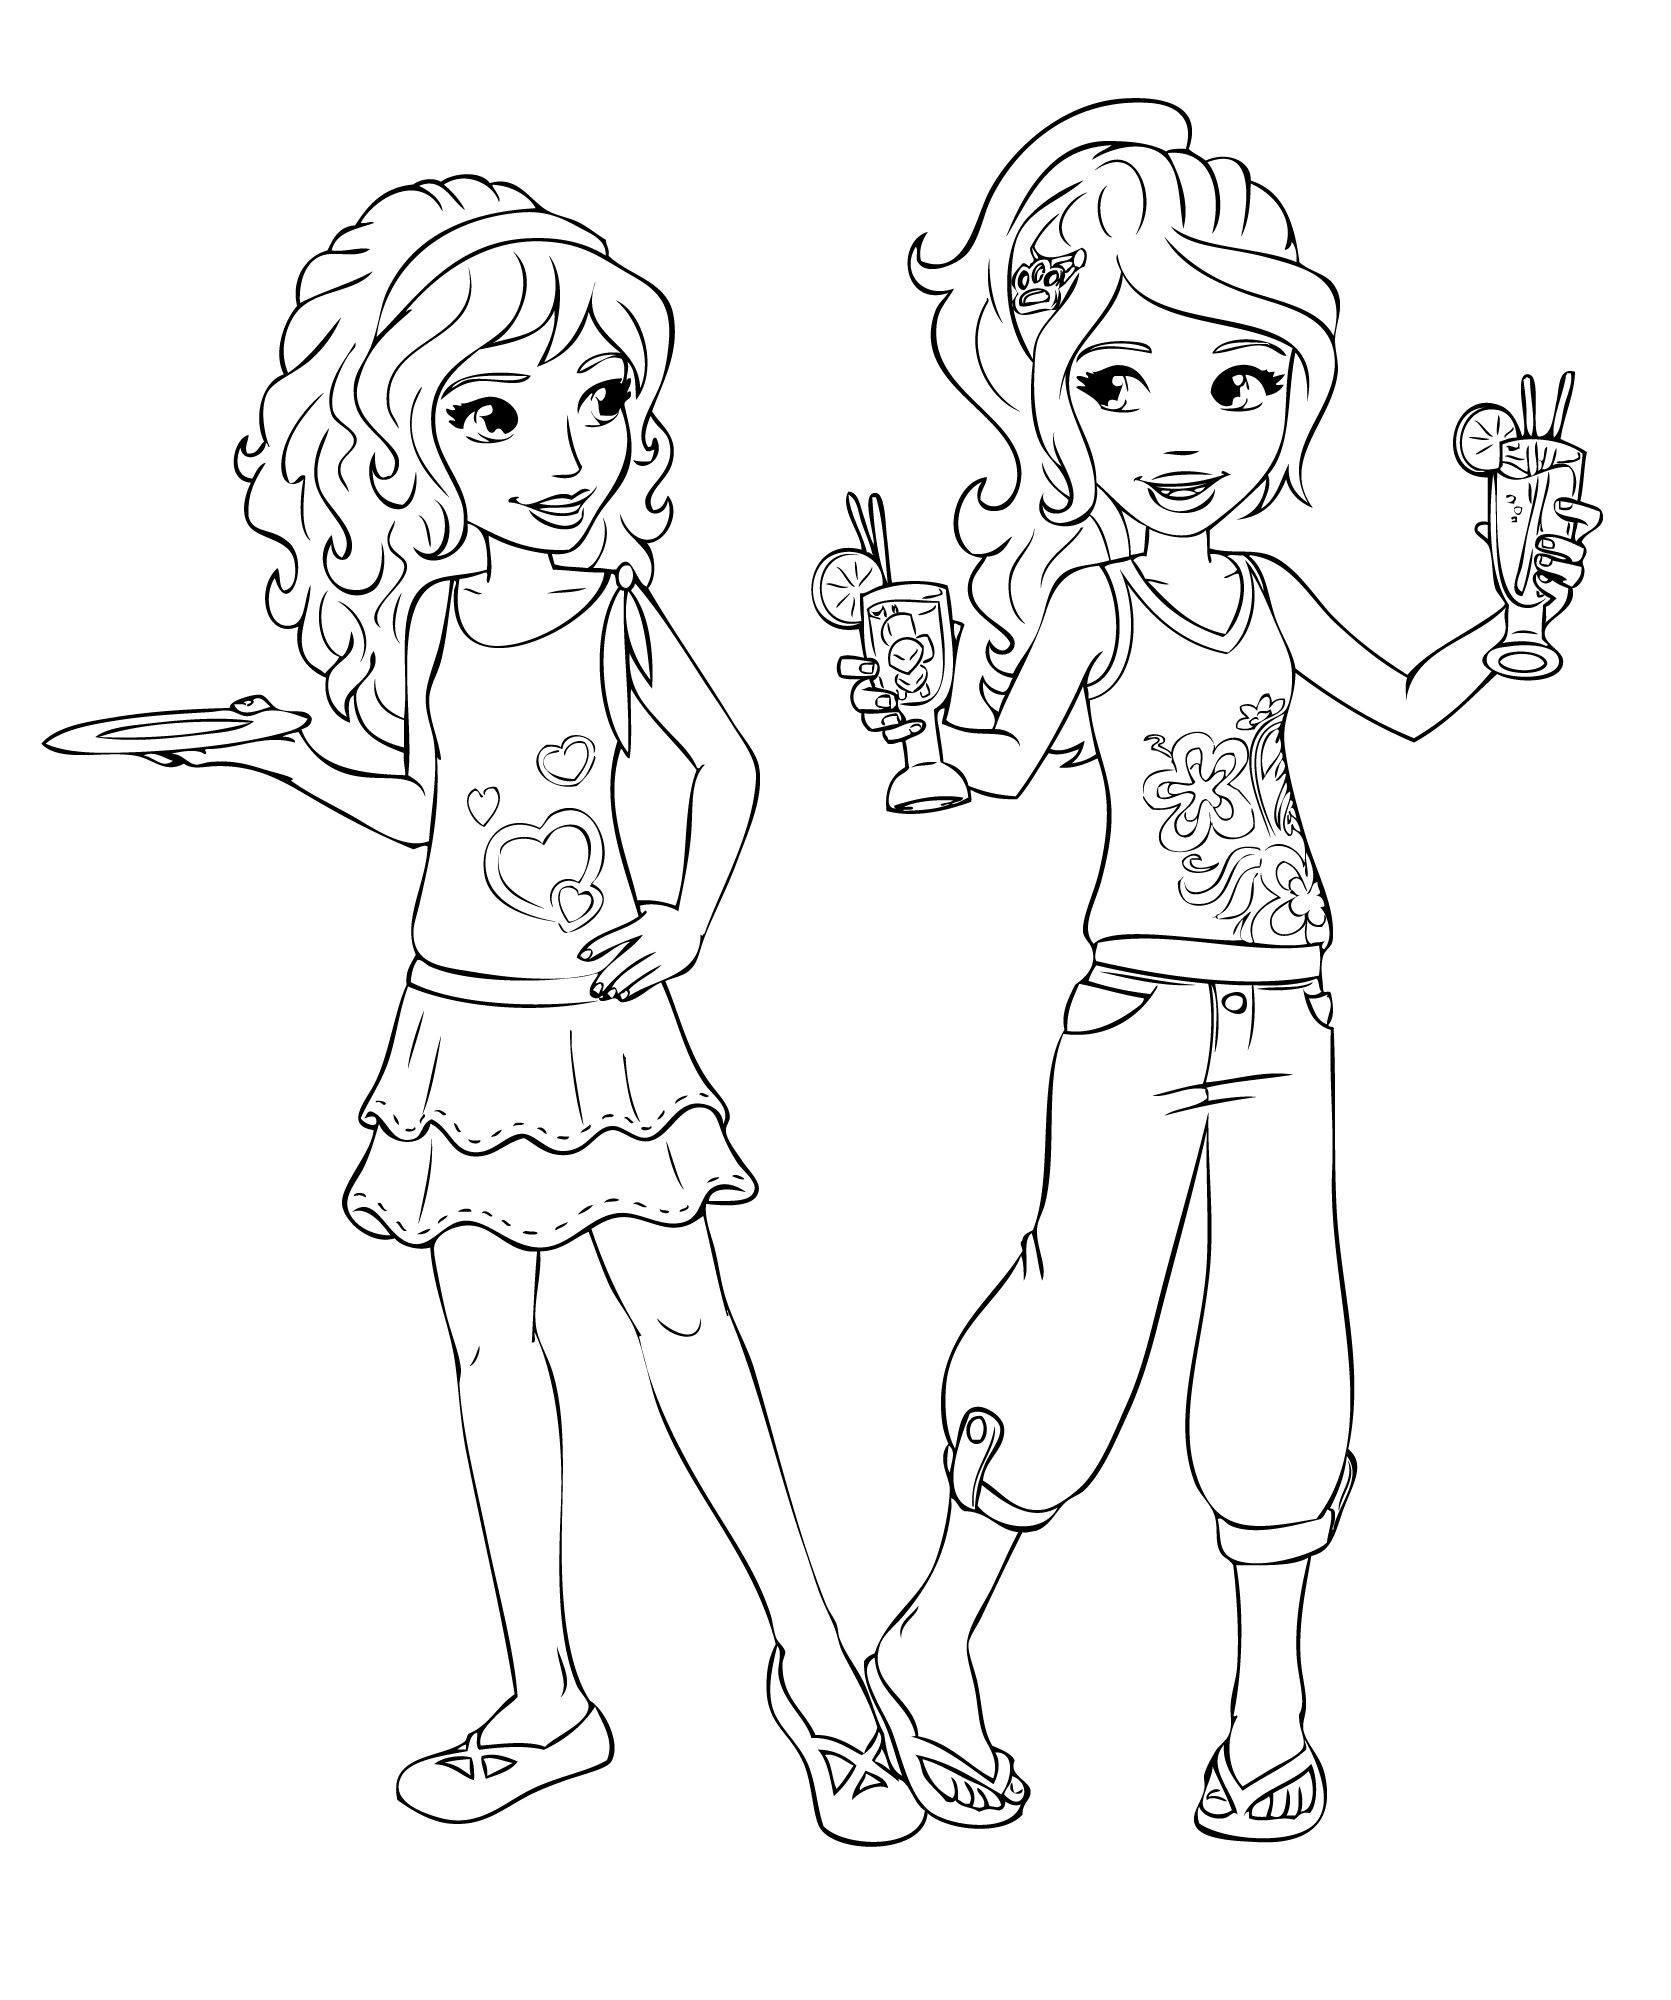 lego friends coloring pages tagged with best friends coloring pages - Friendship Coloring Pages